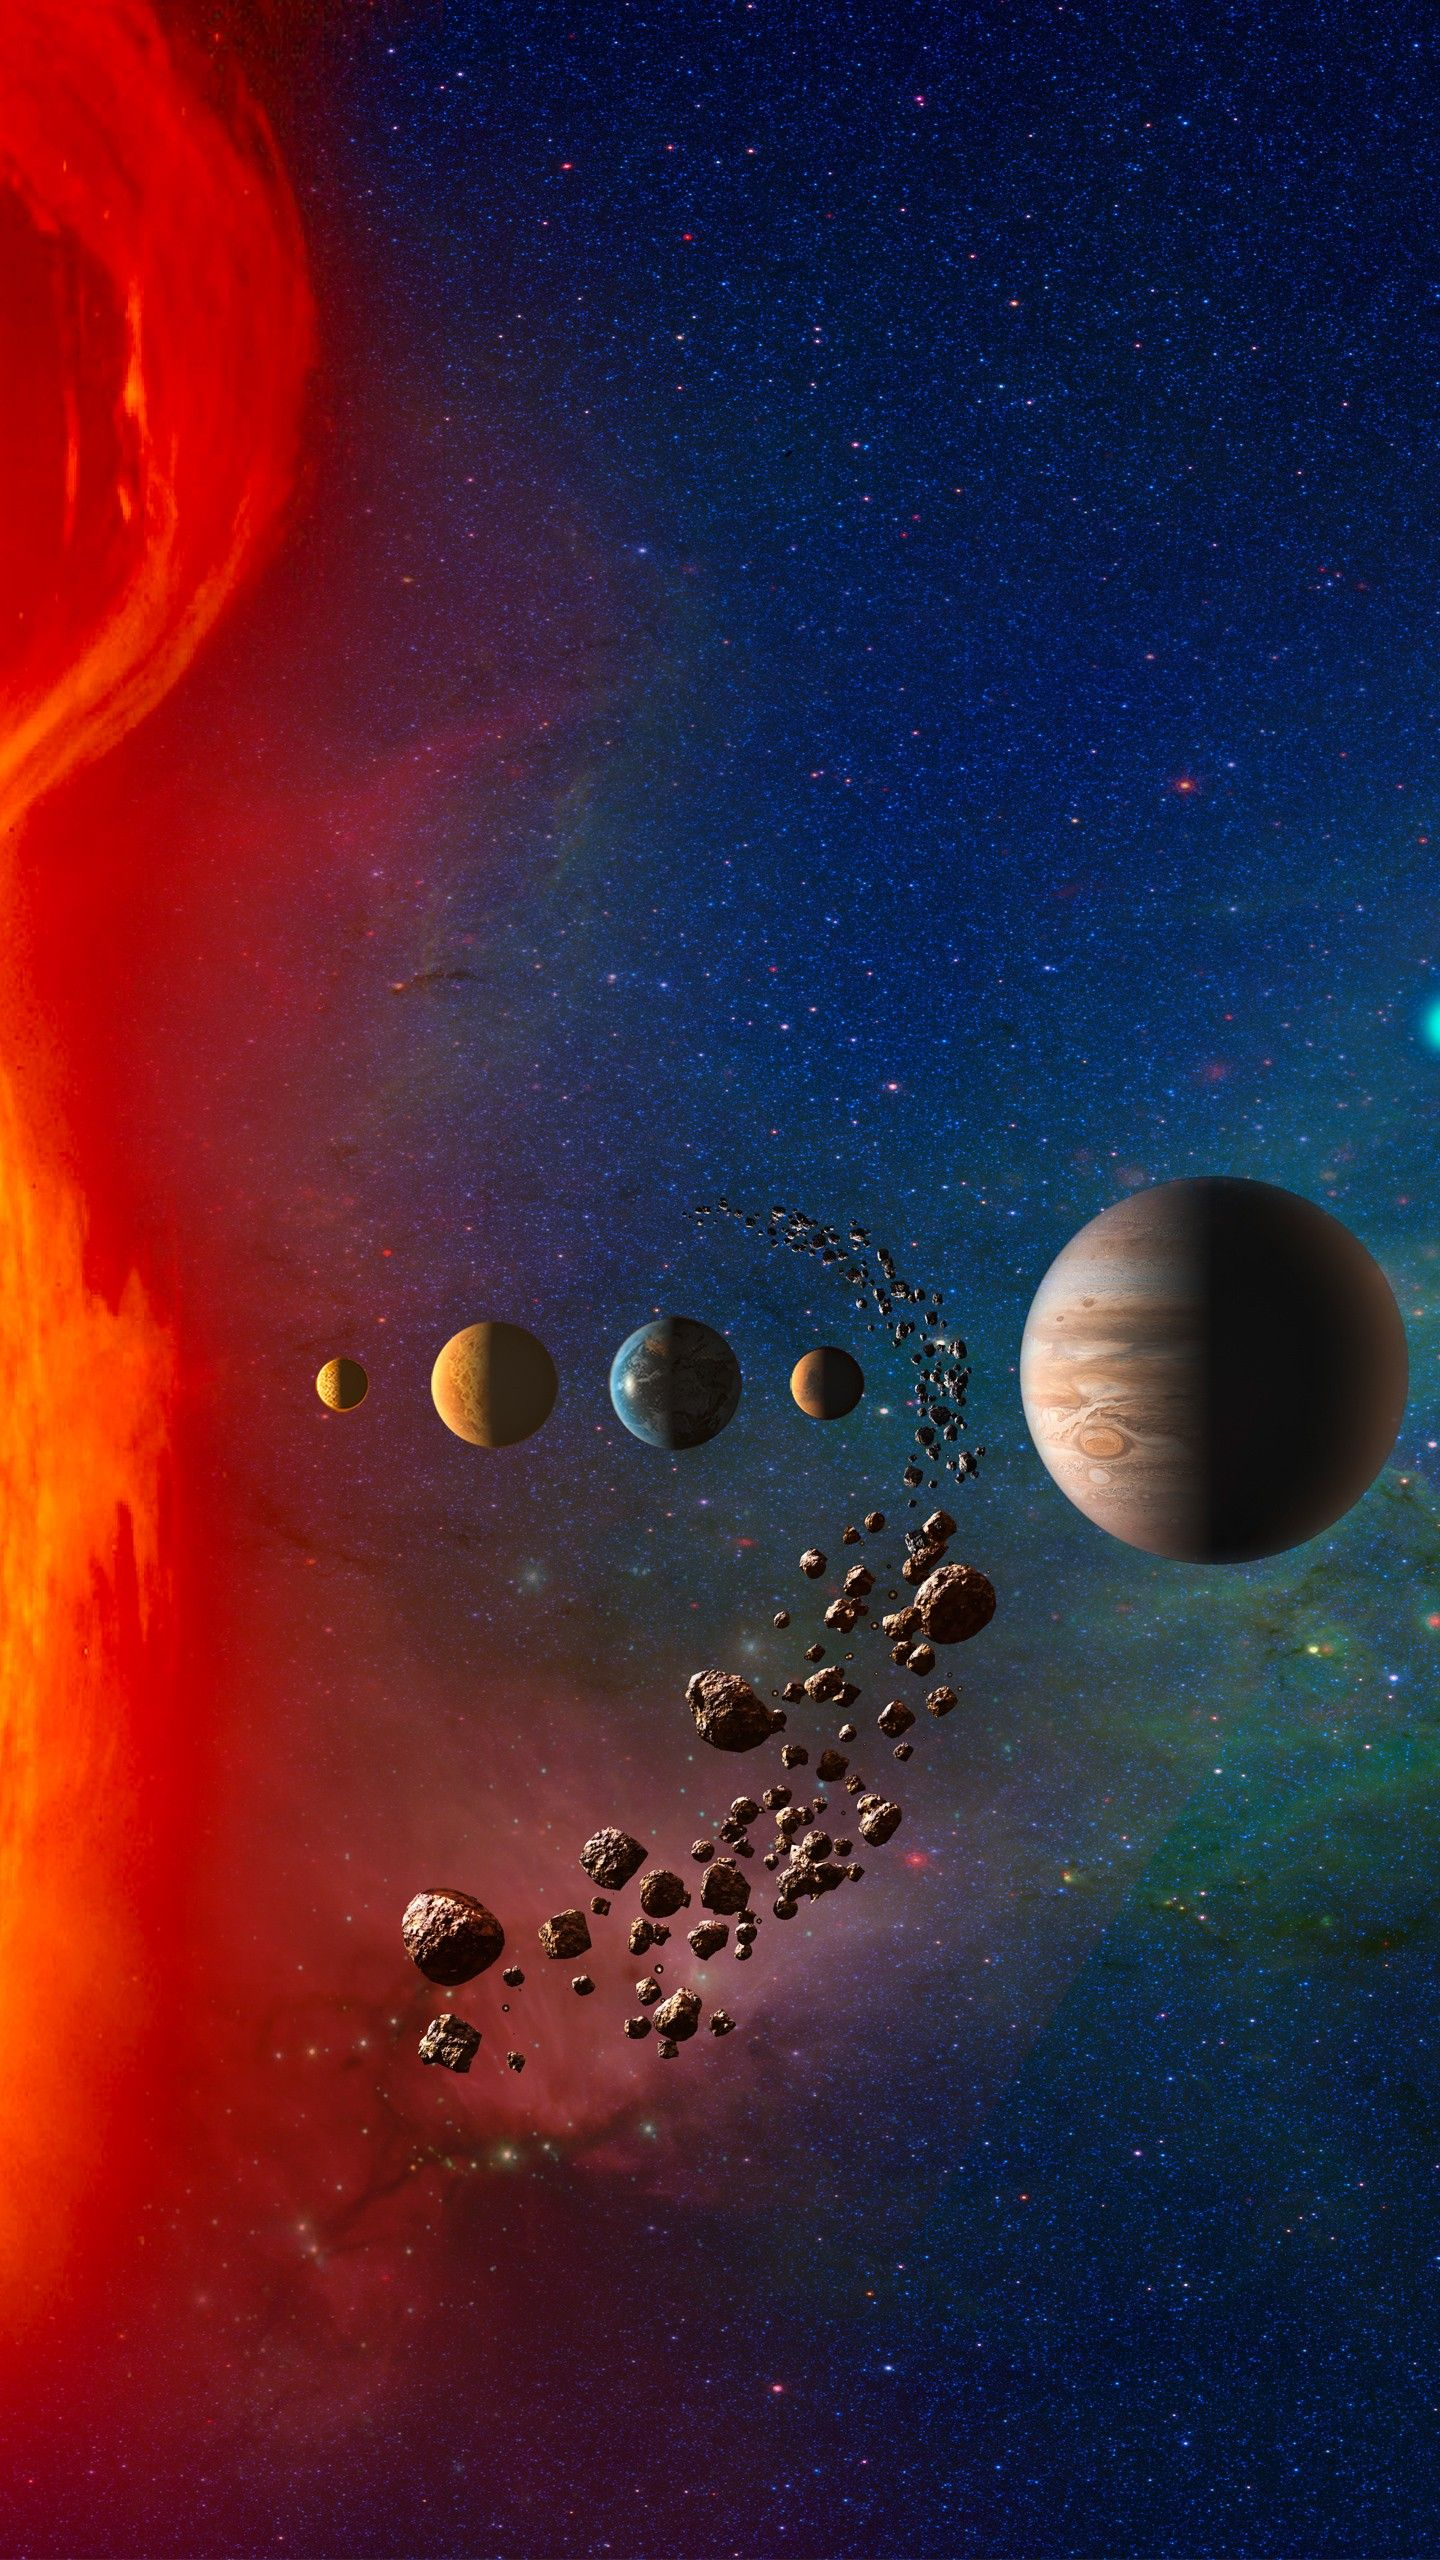 1440x2560 Planets in Solar System 4K Wallpapers | HD Wallpapers | ID #23622